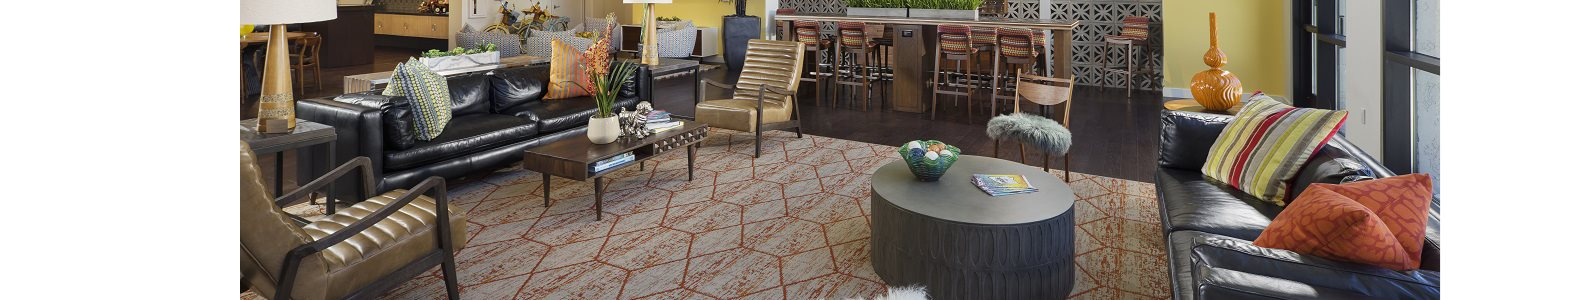 The Perch Clubhouse at The Curve at Melrose Luxury Apartments, Phoenix, AZ